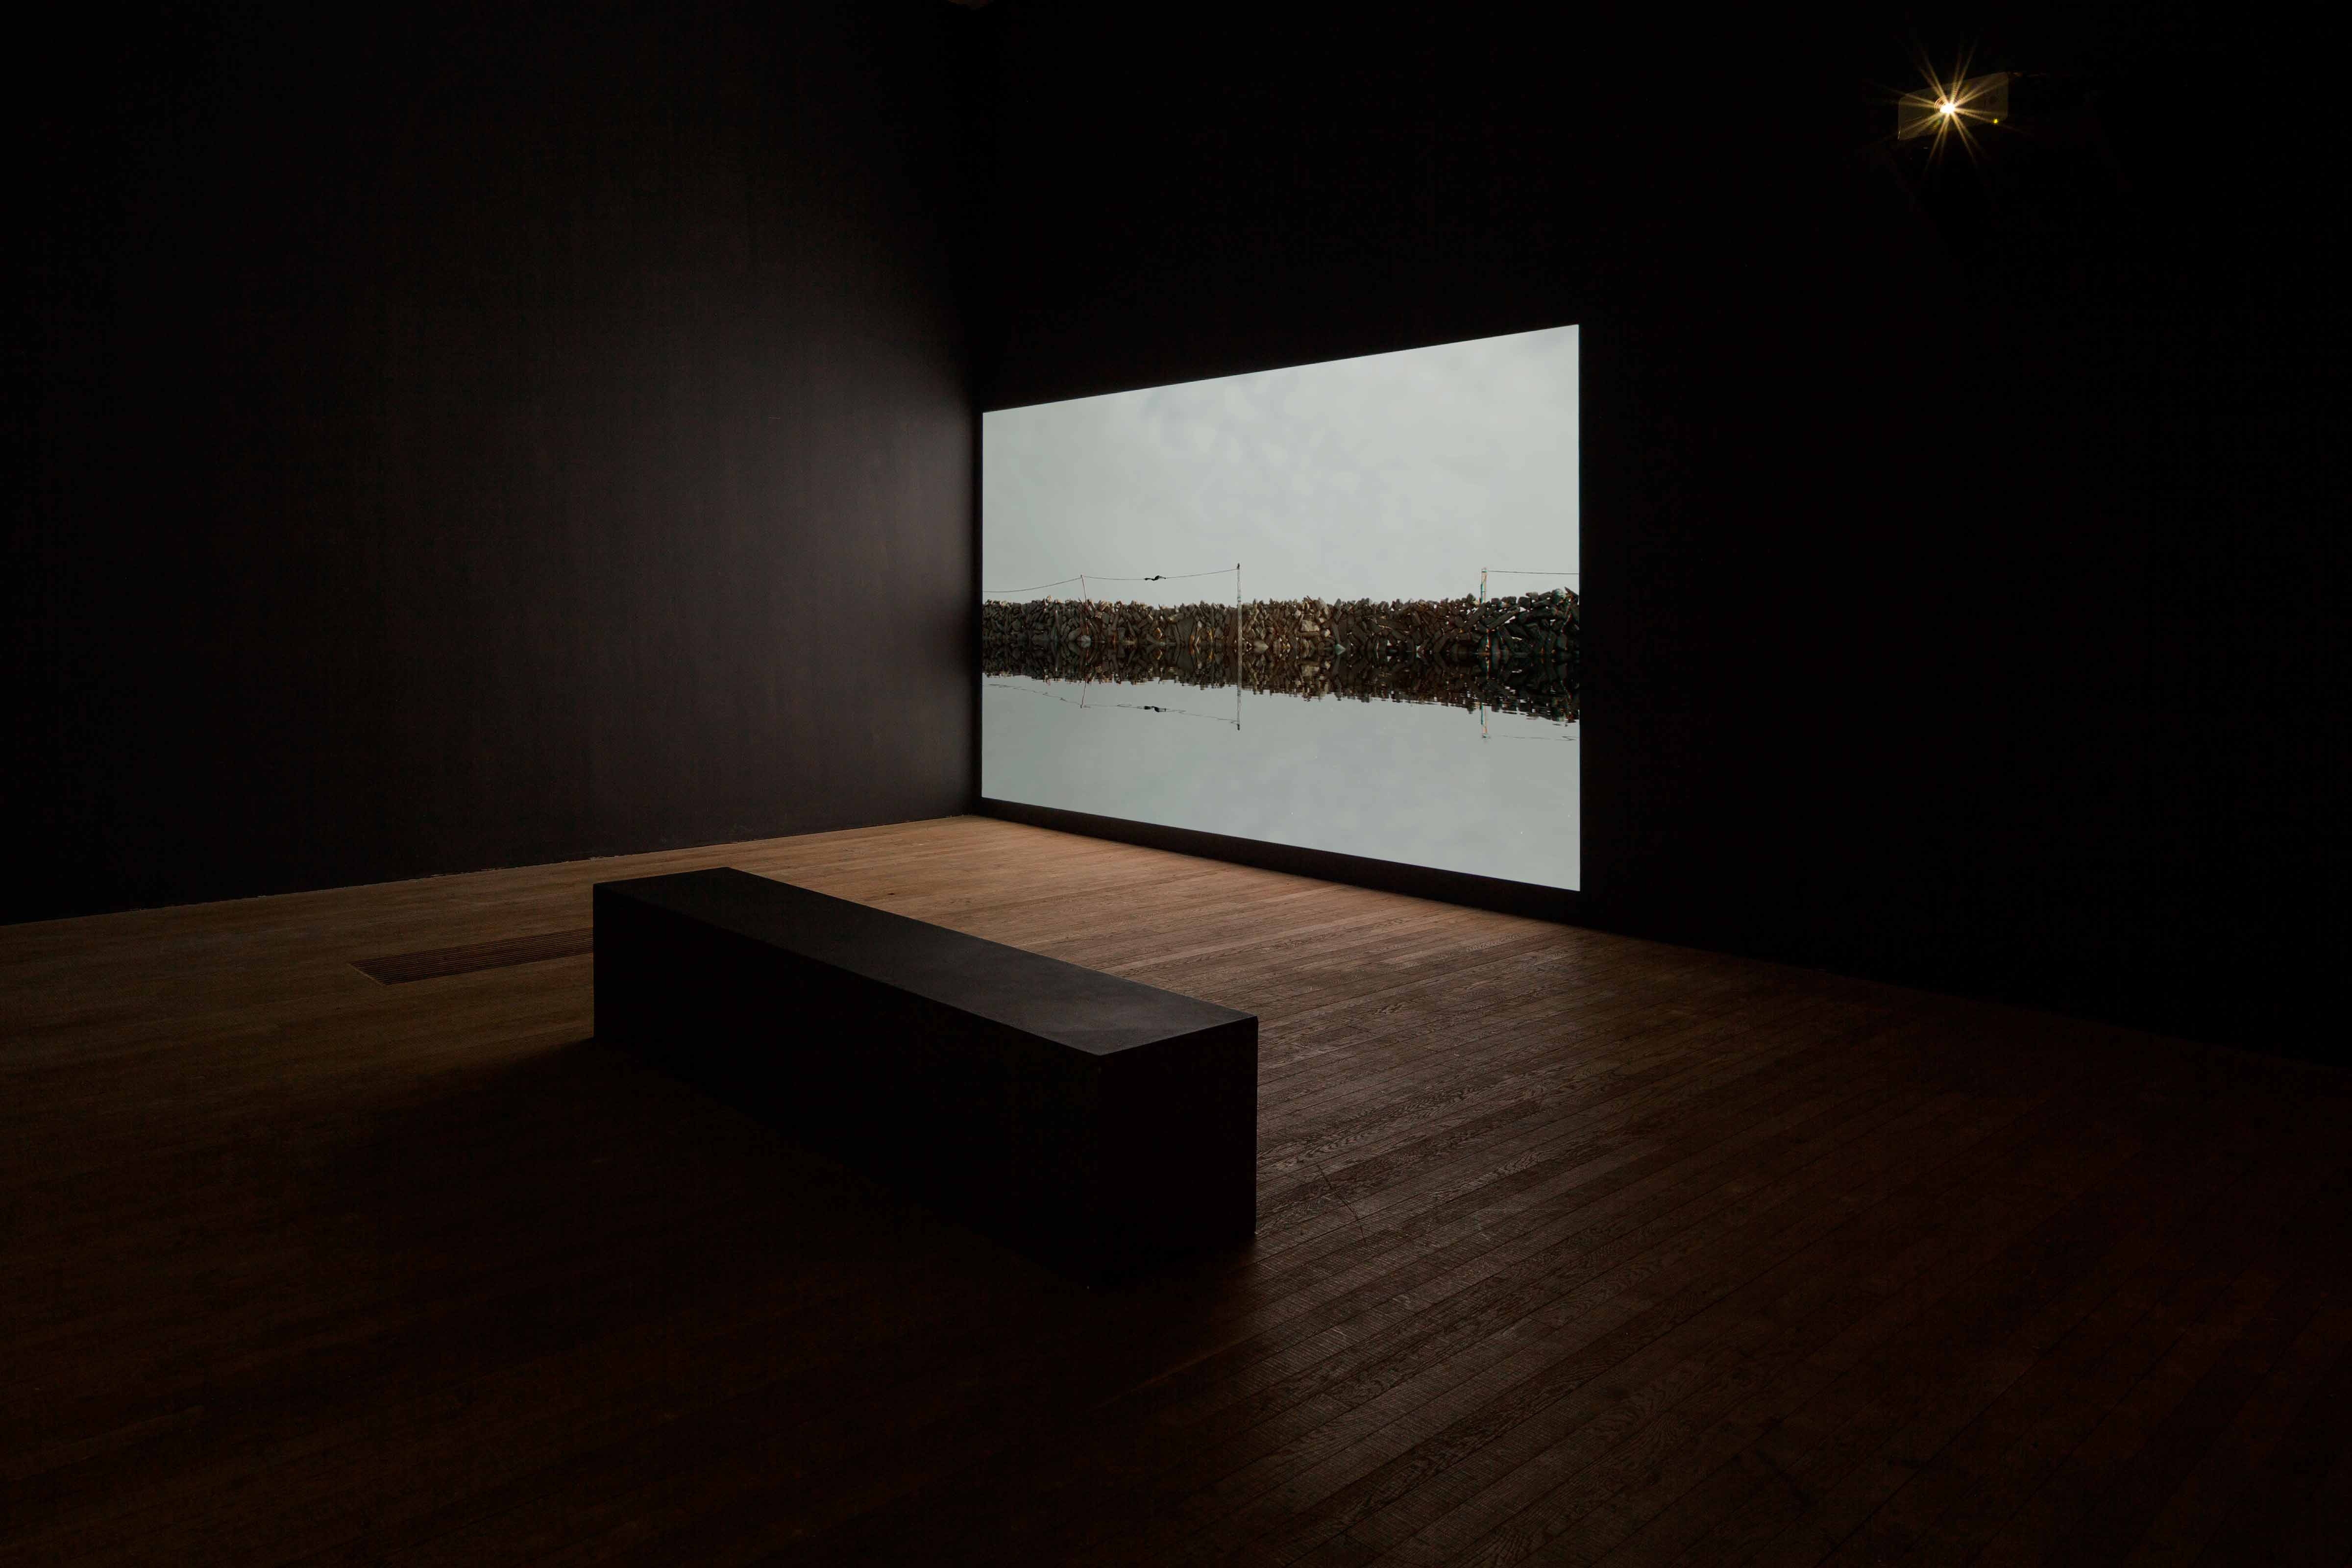 2116 - Forecast of the next century, Lewis Glucksman Gallery, Cork, 2016. Curated by Fiona Kearney, Chris Clarke & Caitlin Doherty.